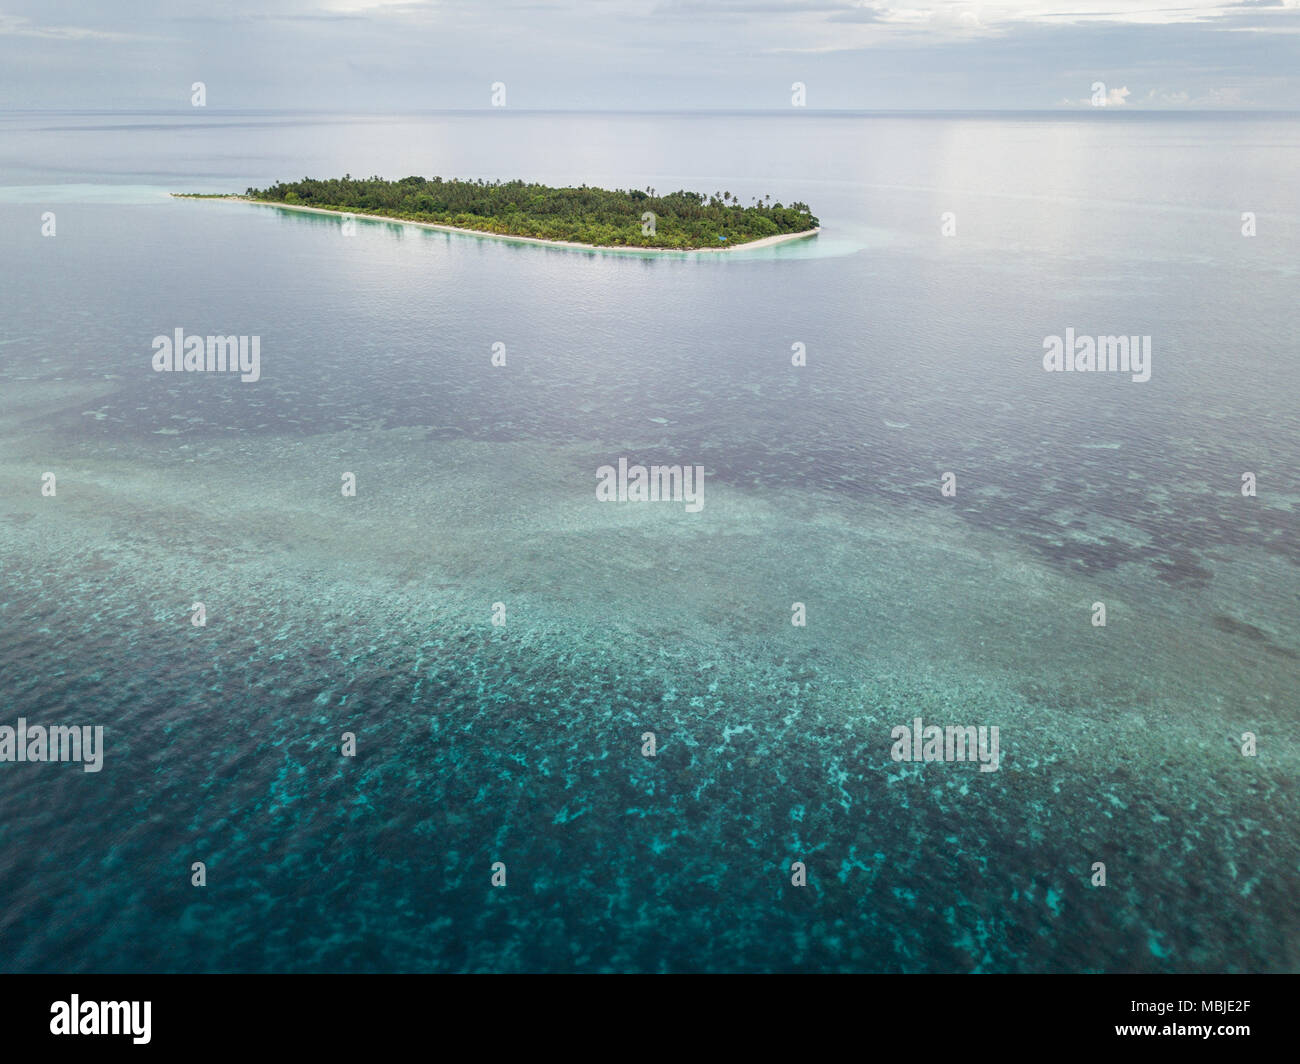 A beautiful coral reef grows near a remote Indonesian island in the Banda Sea. This region is in the Coral Triangle and has high marine biodiversity. - Stock Image